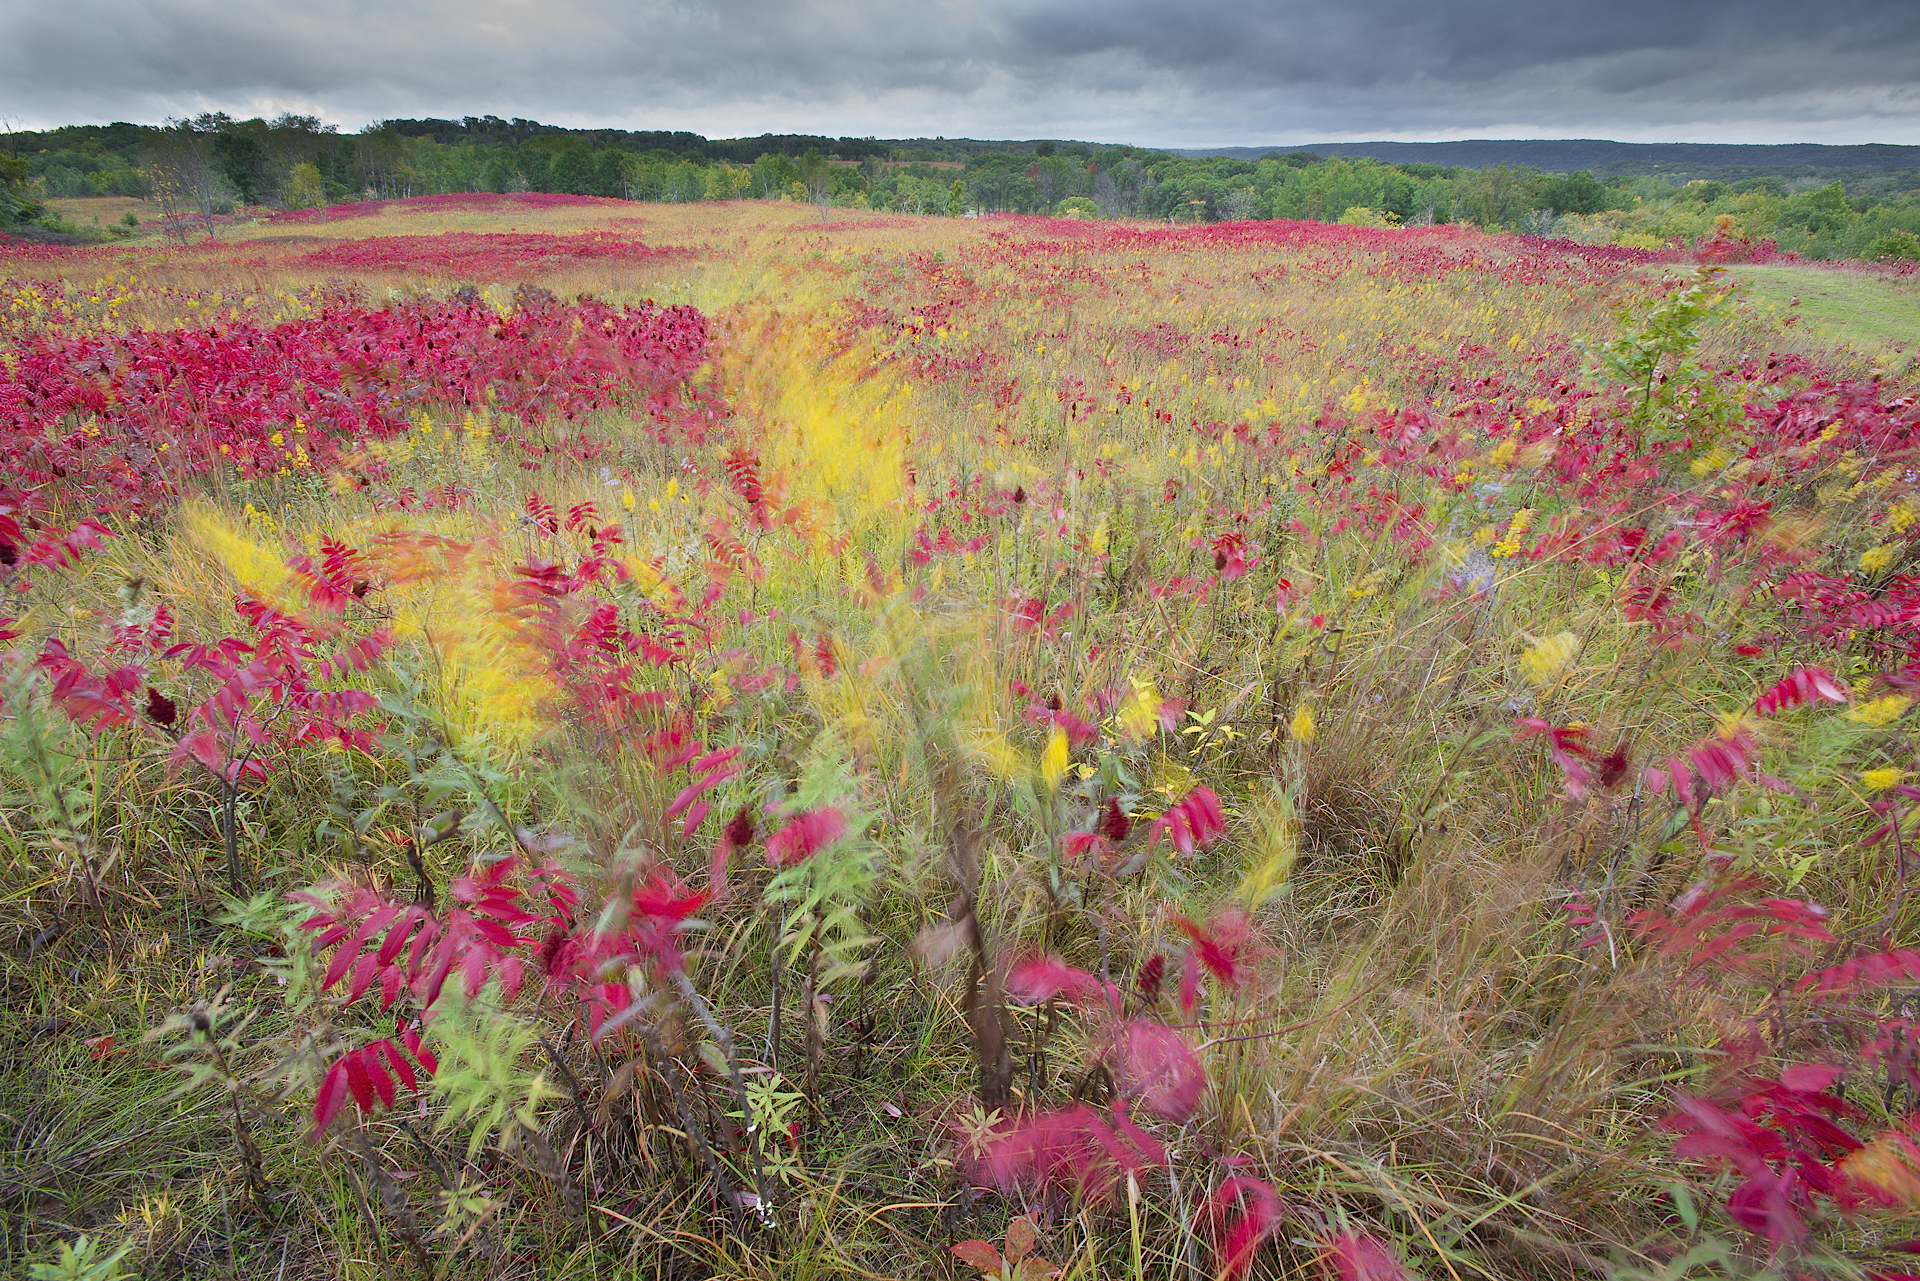 Ahead of the storm: sumac and goldenrods